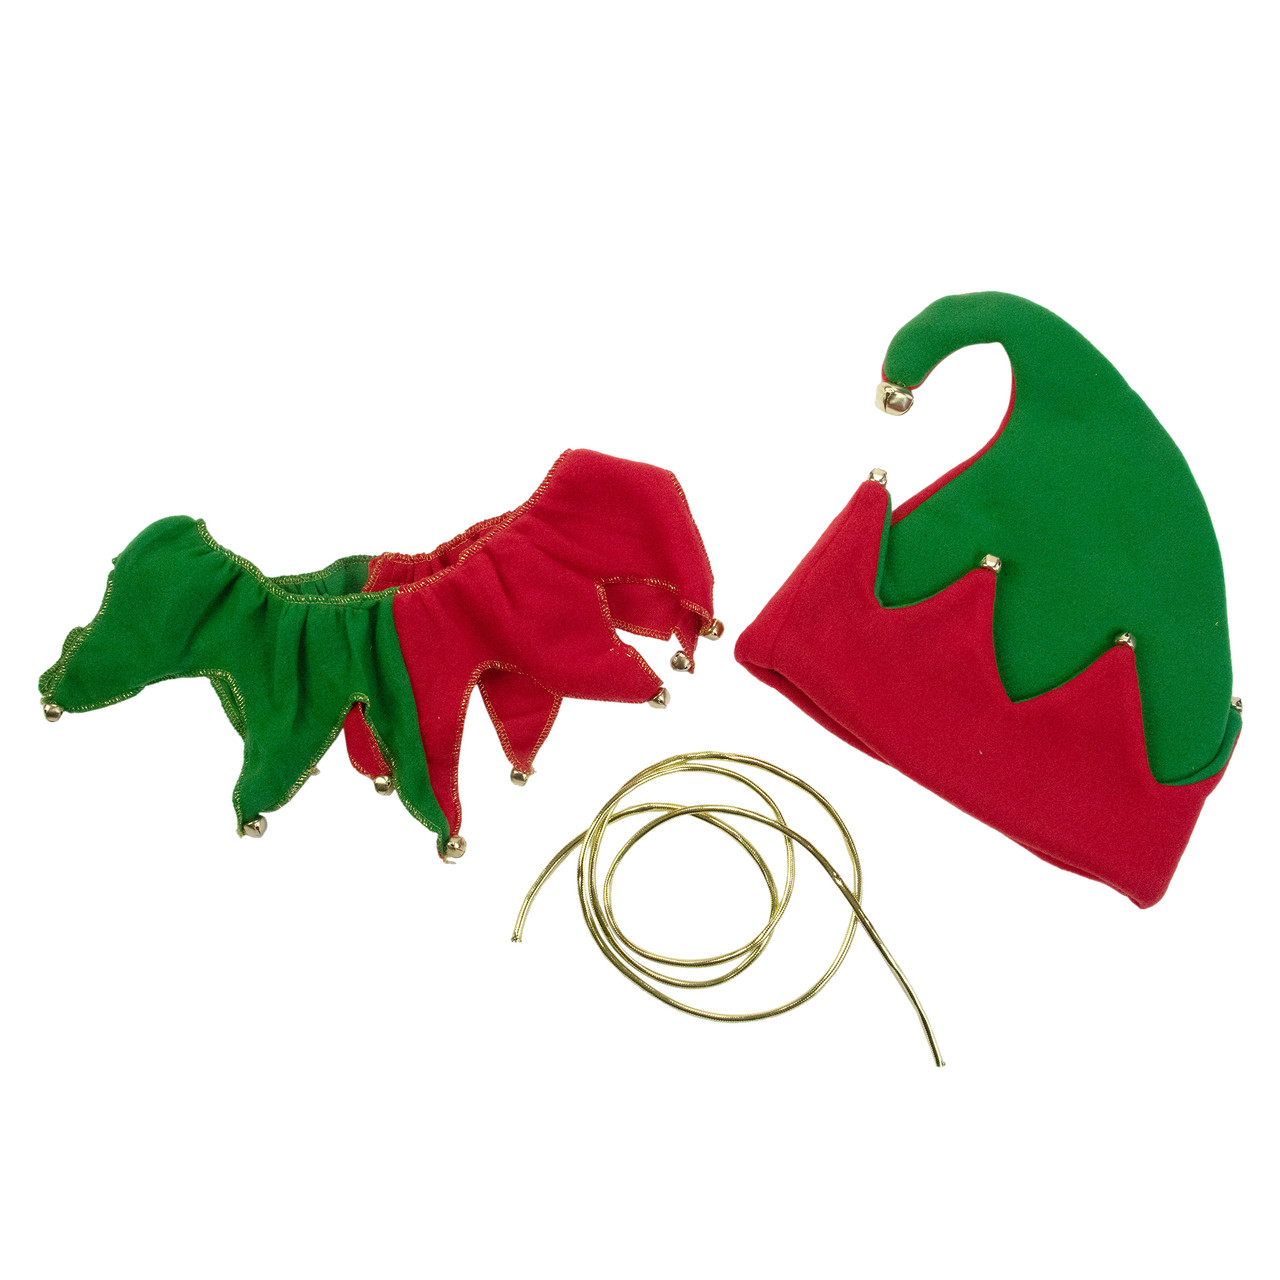 red and green unisex adult 5 piece christmas elf costume set adult menswomens plus size 5699962 - Christmas Elf Costume